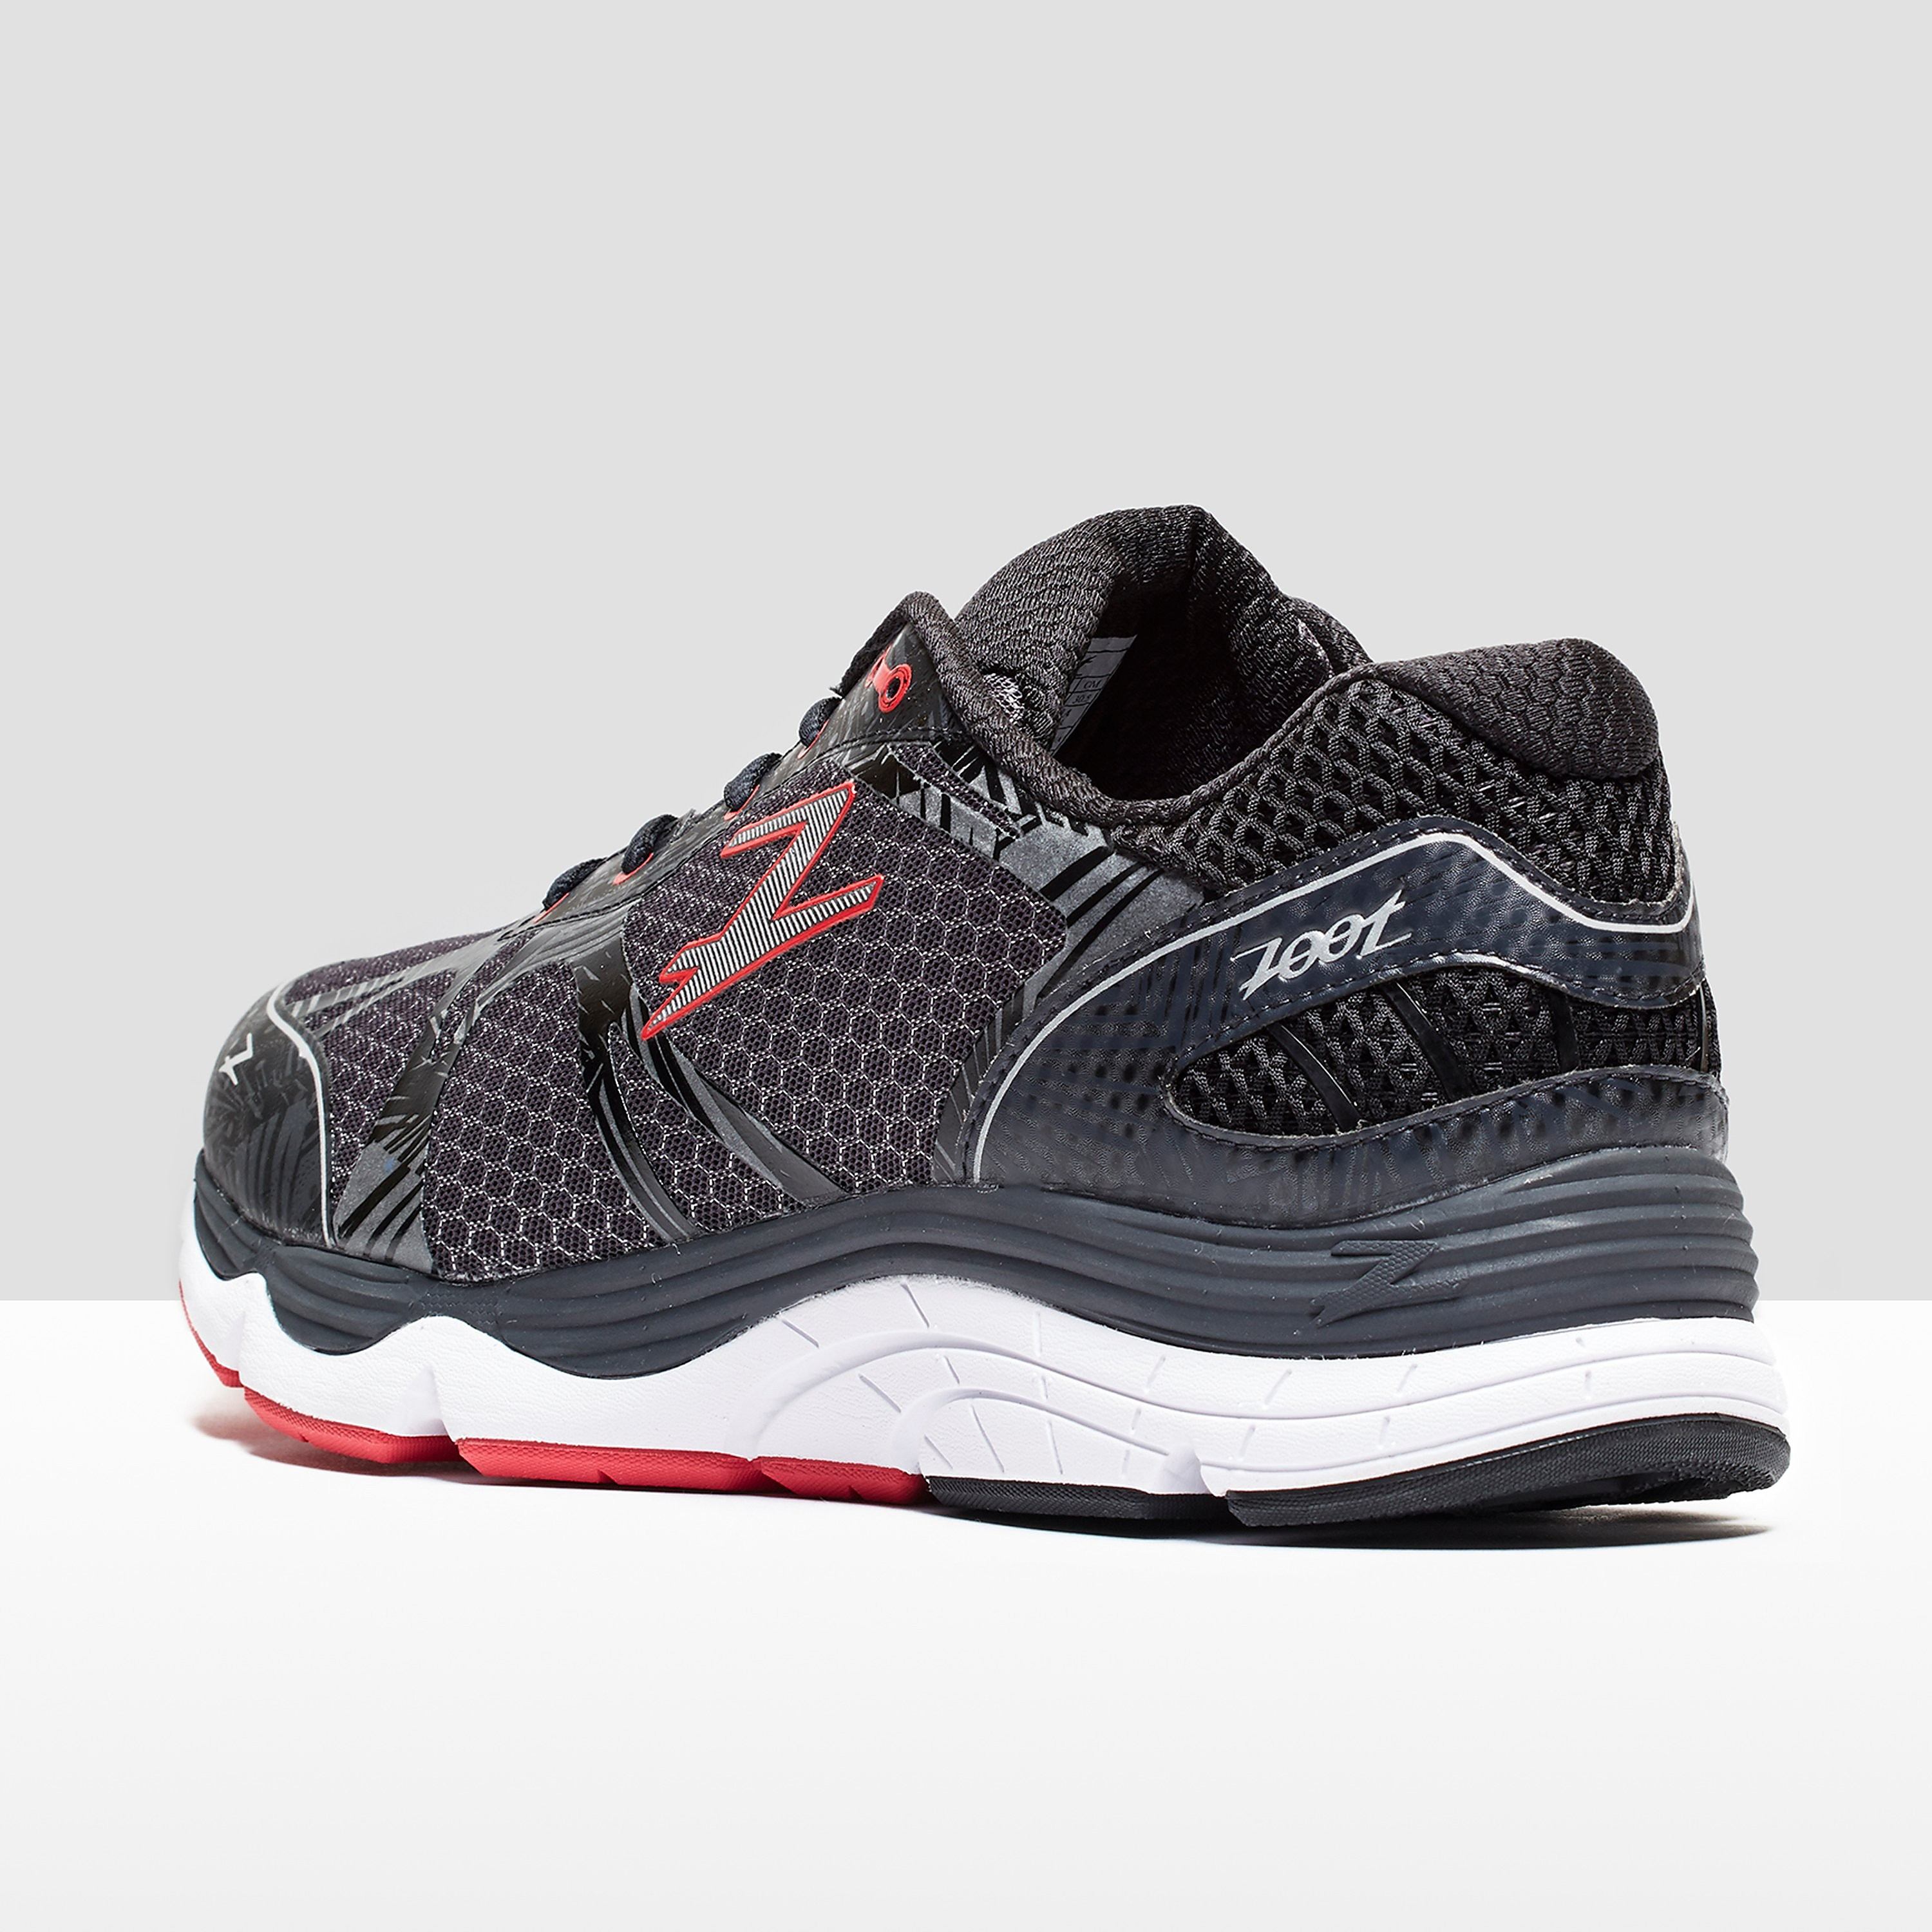 Zoot Del Mar Men's Running Shoe